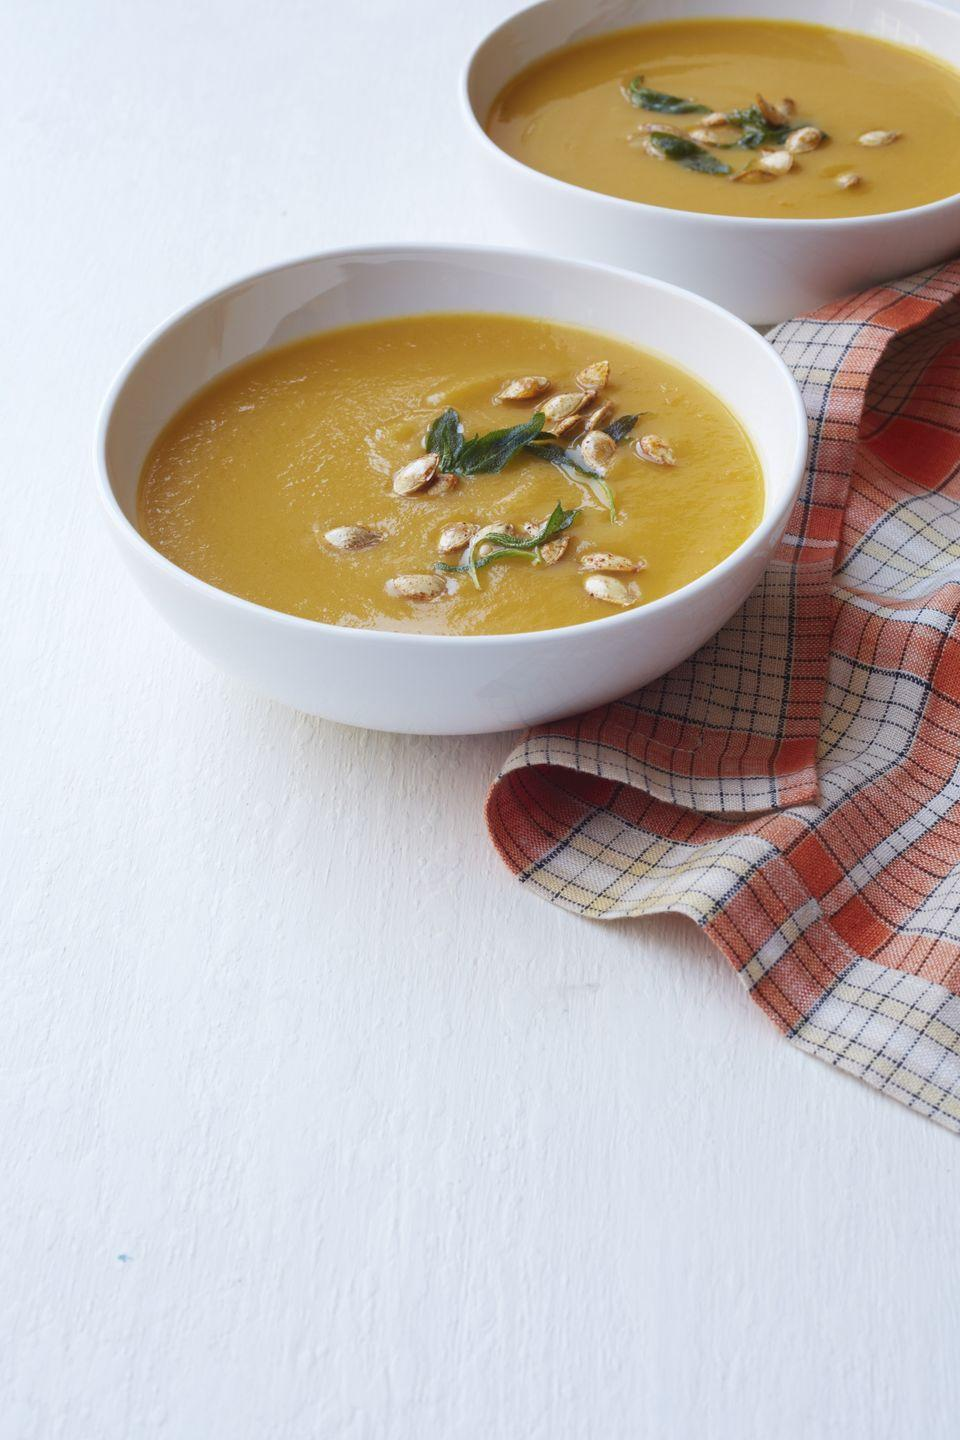 """<p>This sweet and hearty vegetarian soup is supremely satisfying on a chilly fall day. To make it more filling, consider adding chickpeas or white beans.</p><p><em><a href=""""http://www.womansday.com/food-recipes/food-drinks/recipes/a12291/butternut-squash-carrot-soup-recipe-wdy1013/"""" rel=""""nofollow noopener"""" target=""""_blank"""" data-ylk=""""slk:Get Butternut Squash and Carrot Soup recipe"""" class=""""link rapid-noclick-resp"""">Get Butternut Squash and Carrot Soup recipe</a>. </em></p>"""